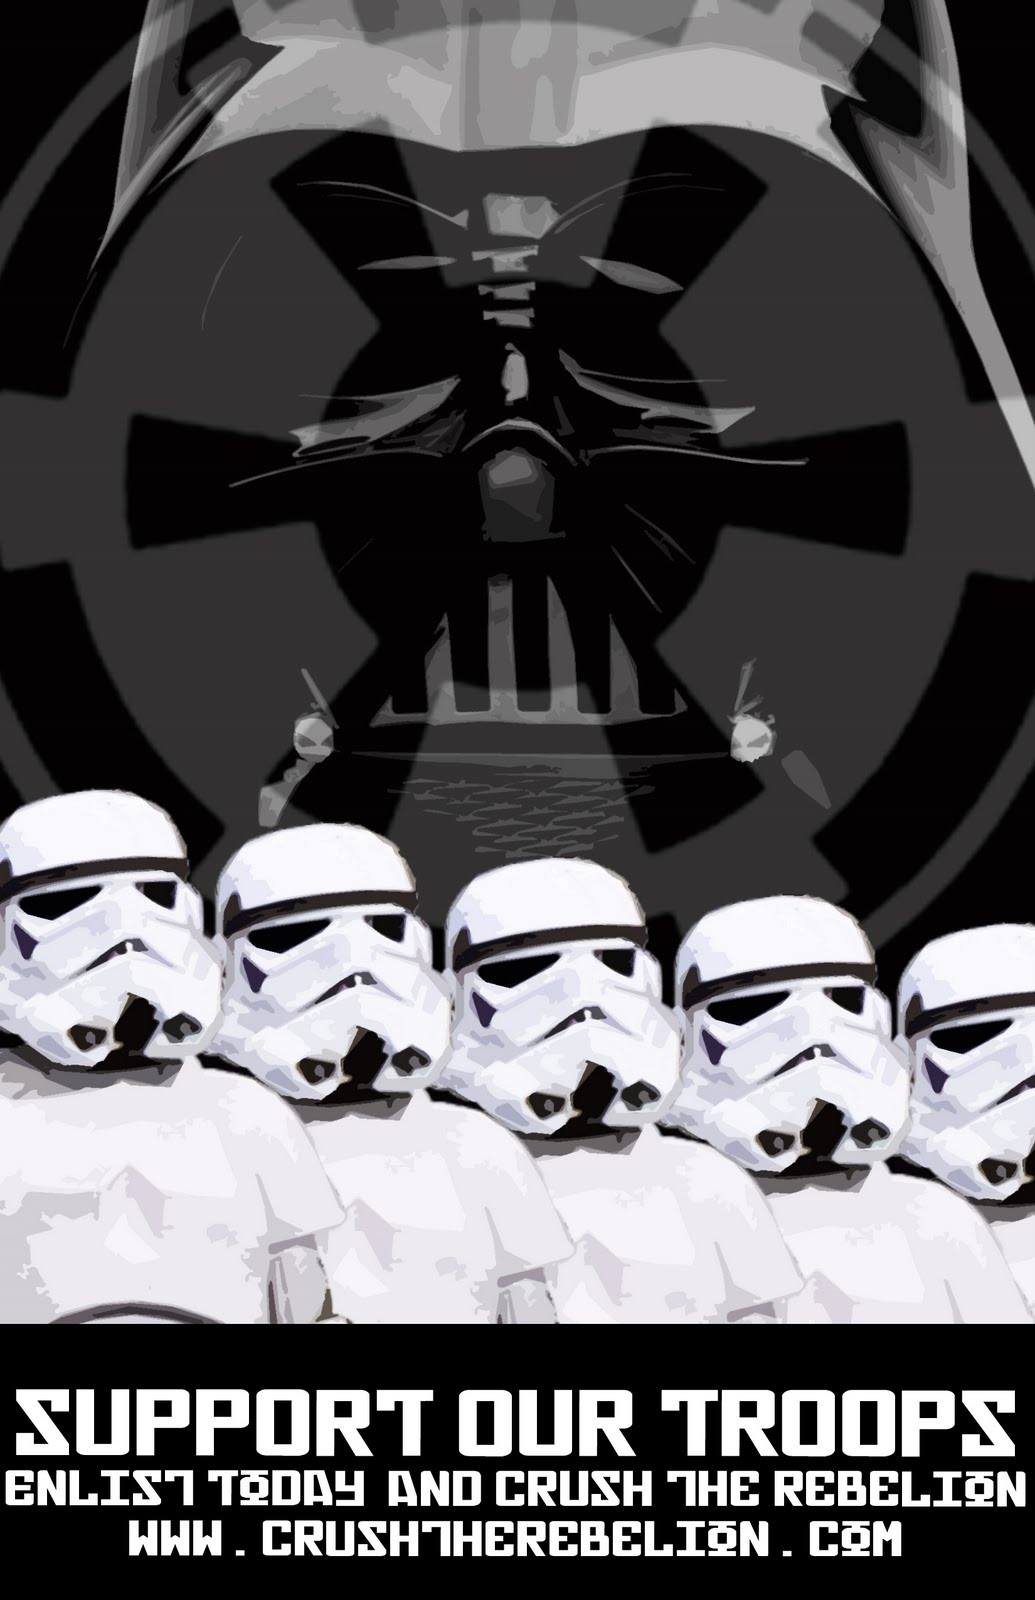 support-our-troops-star-wars-propaganda